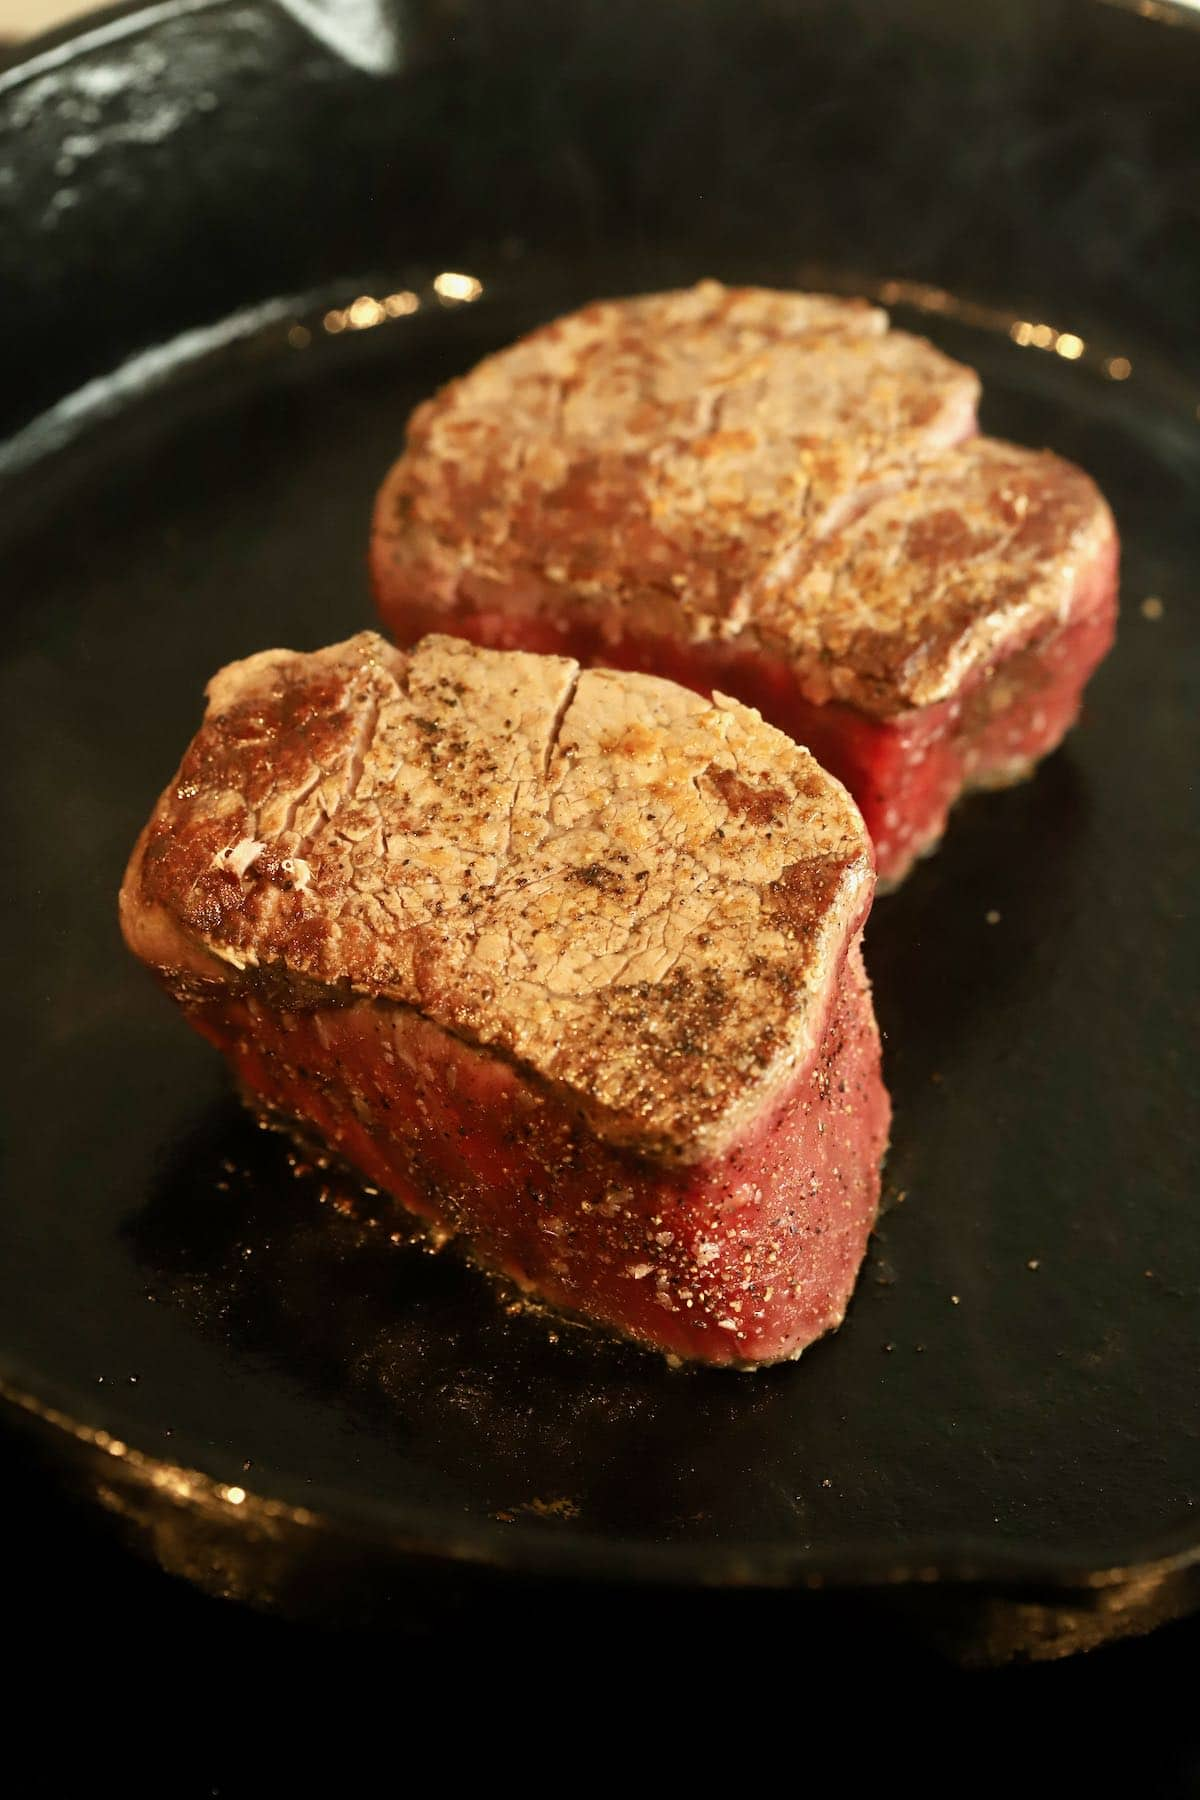 Two steaks cooking in a cast iron skillet.